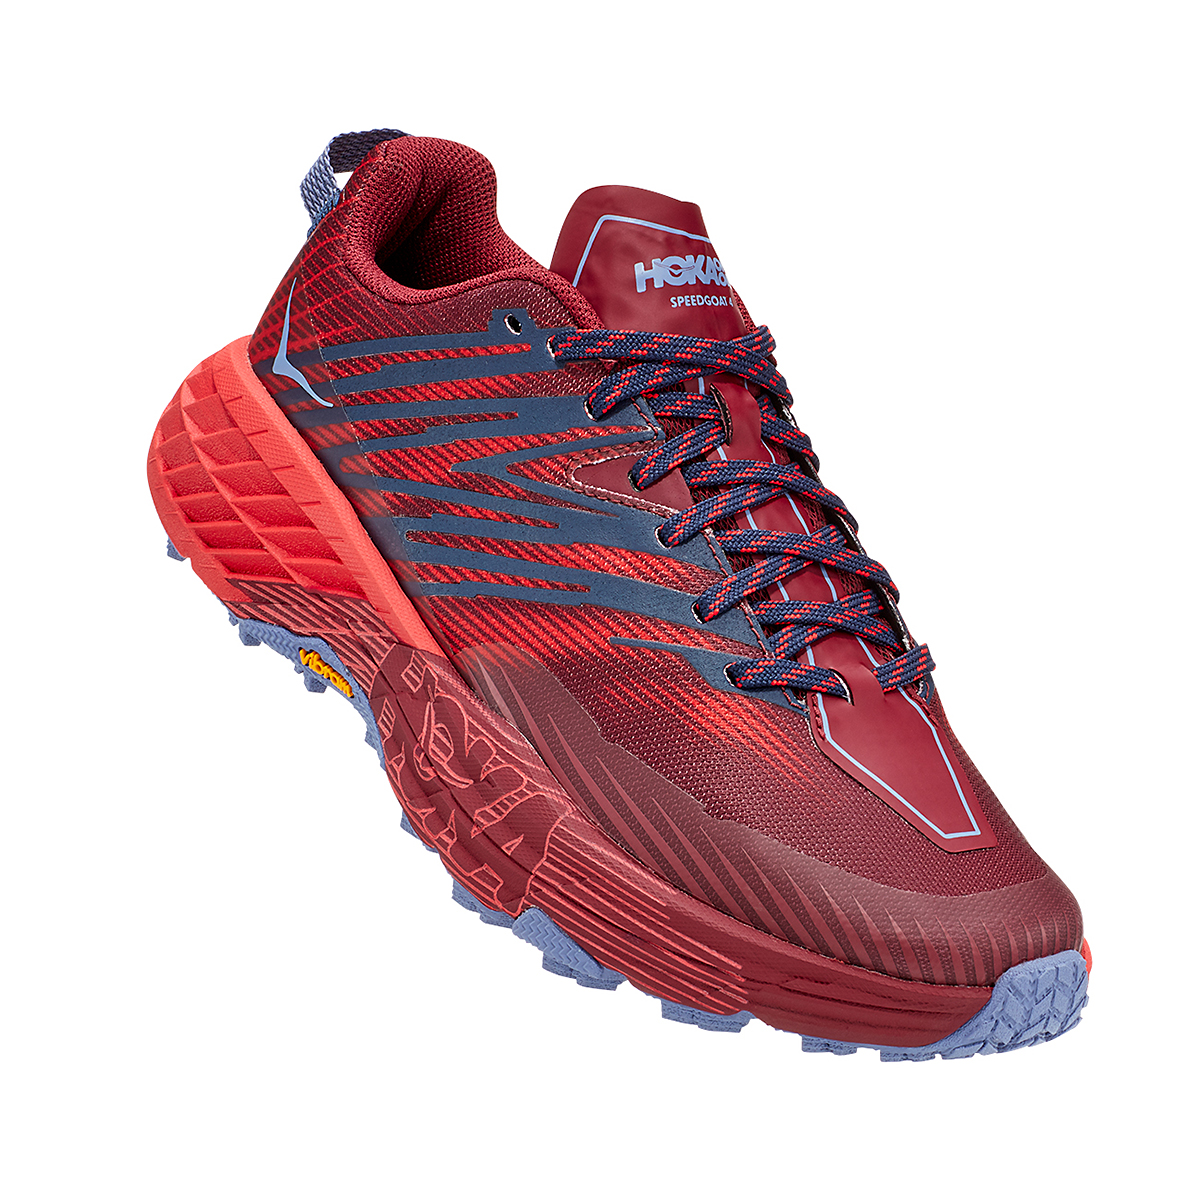 Women's Hoka One One Speedgoat 4 Trail Running Shoe - Color: Cordovan/High Risk Red - Size: 5 - Width: Regular, Cordovan/High Risk Red, large, image 3